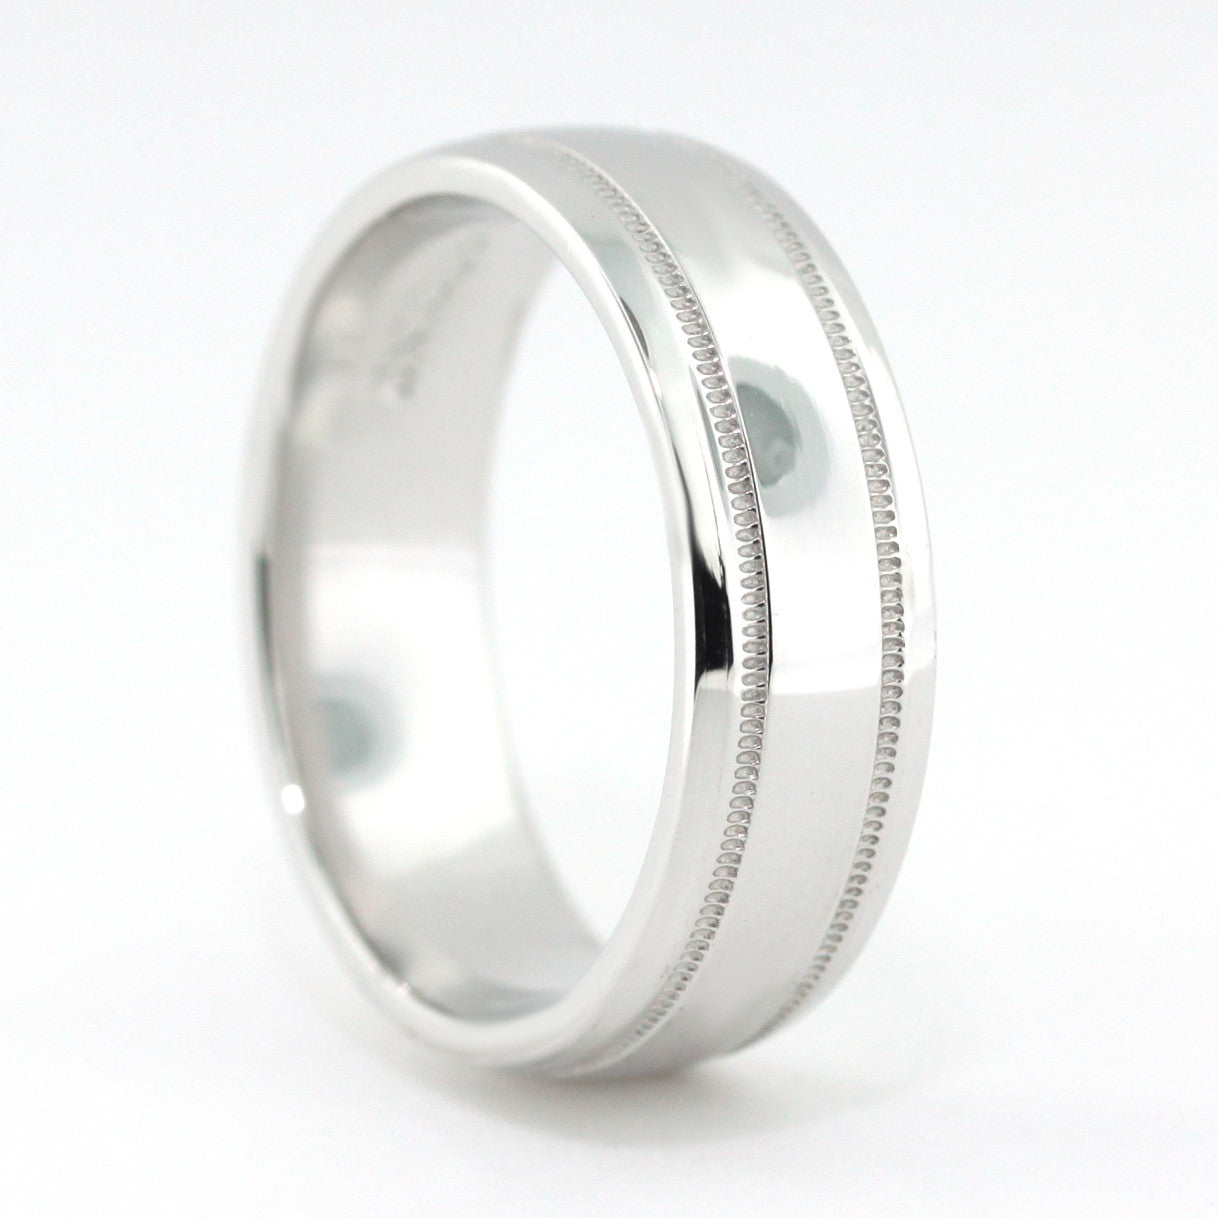 Men's Wedding Band - All Mine - Moissanite Rings